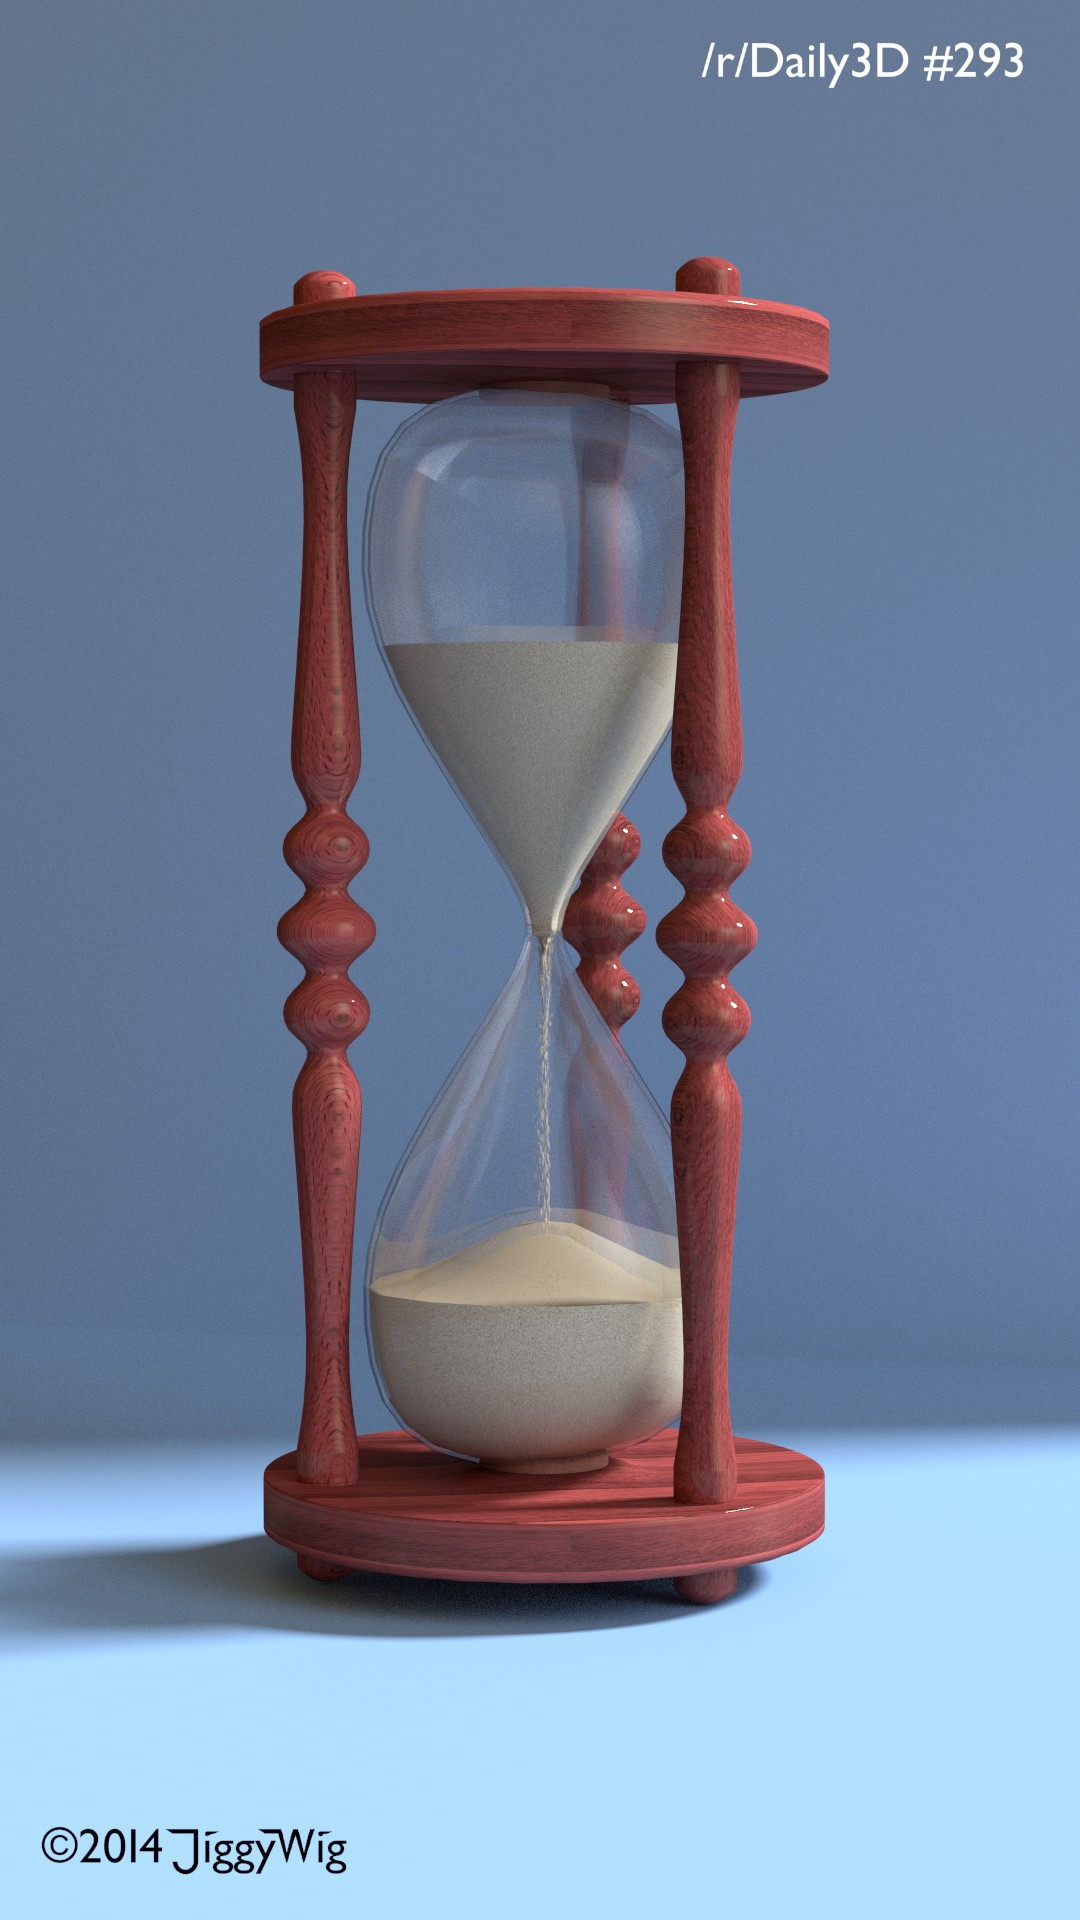 #293 - Simple Hourglass.